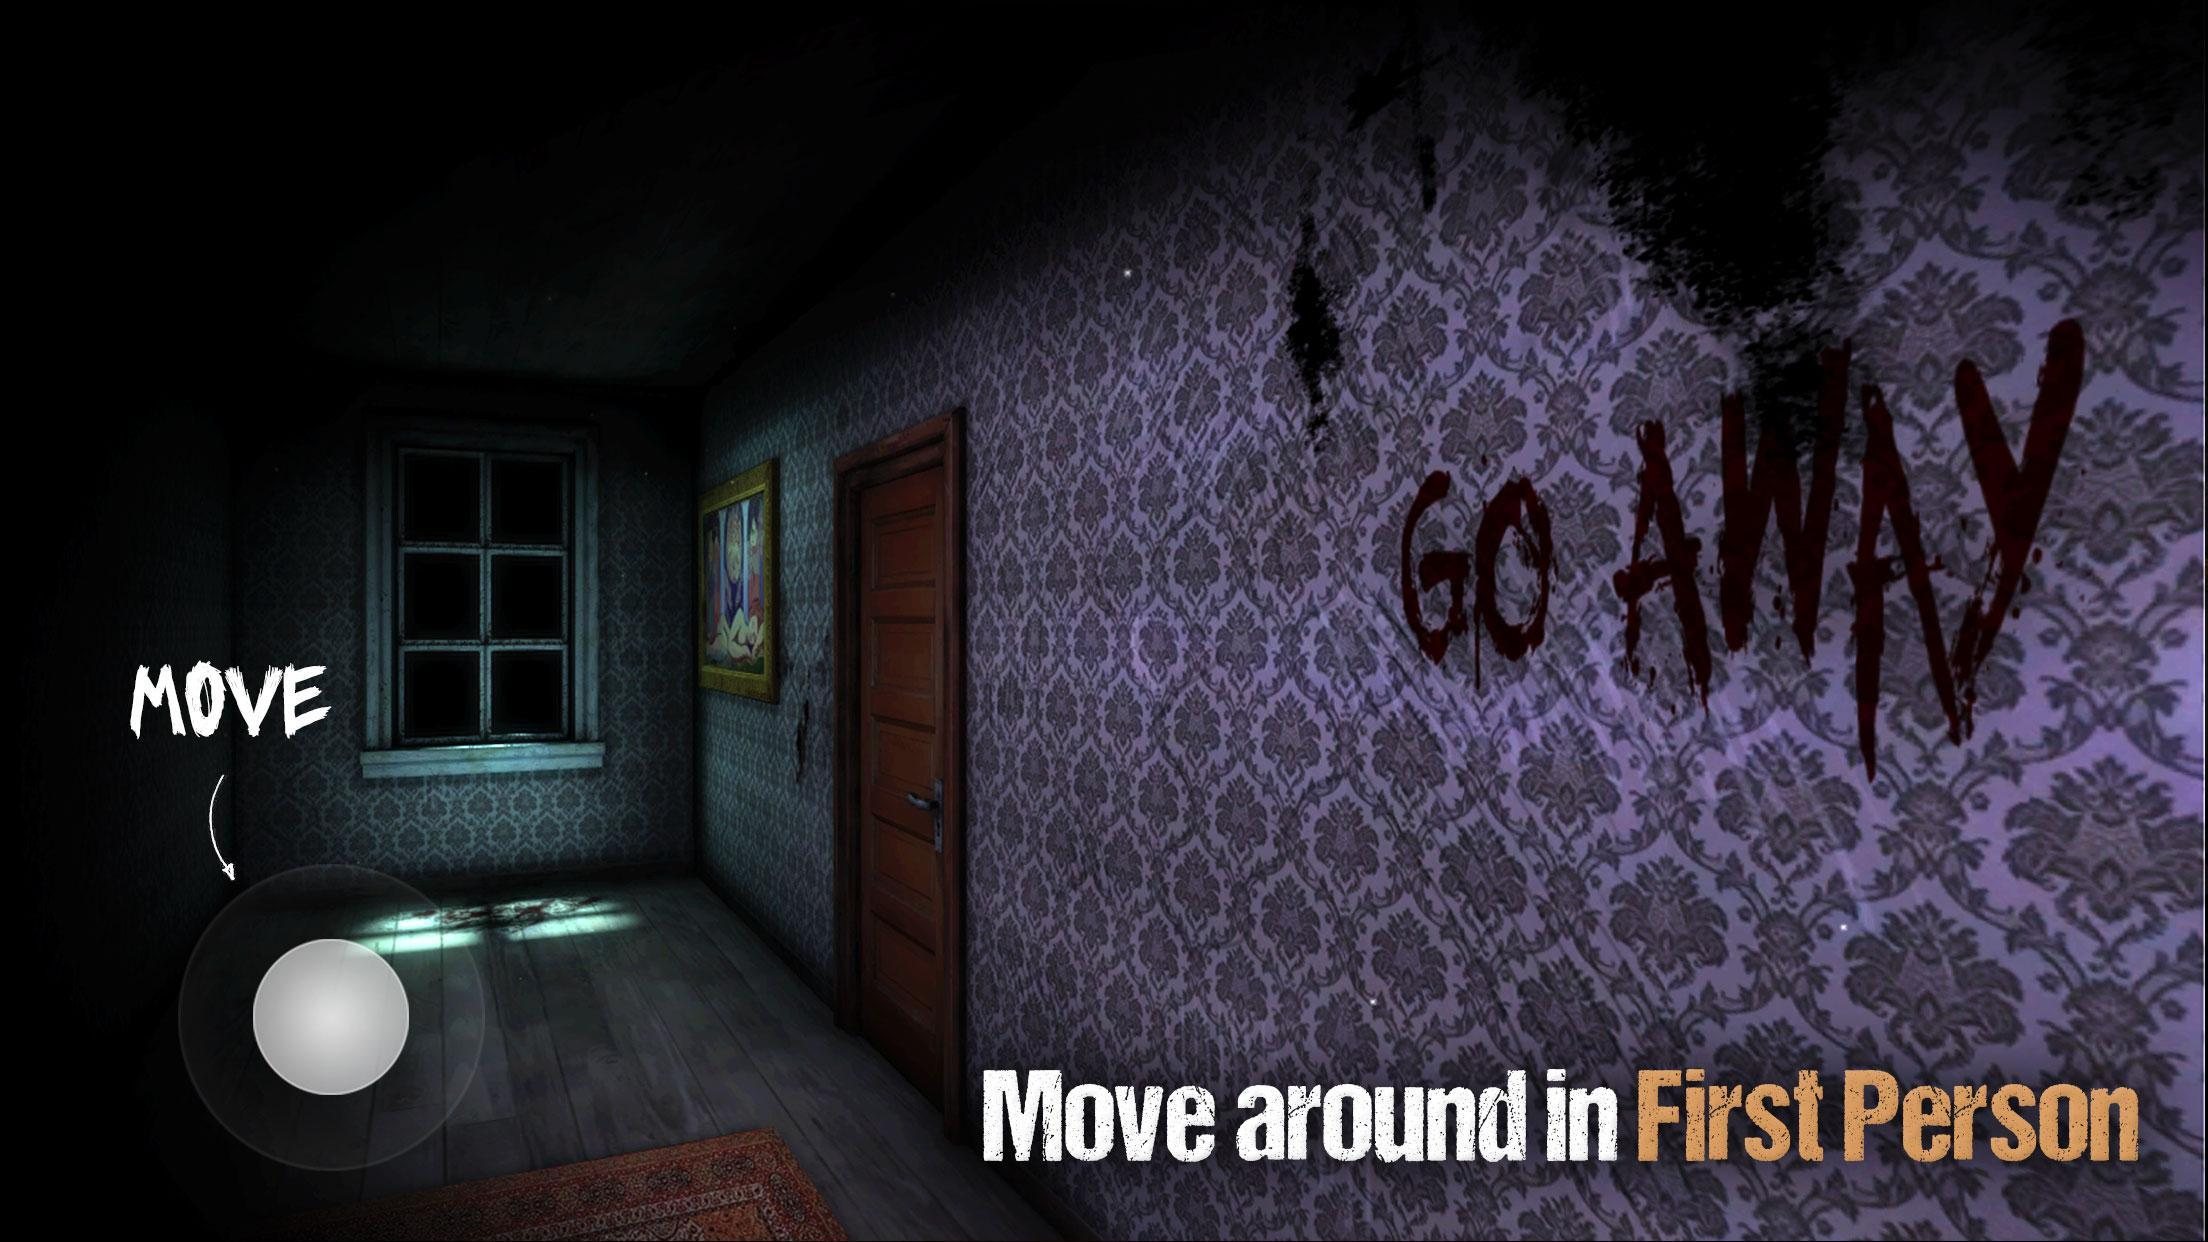 Sinister Edge Scary Horror Games 2.4.1 Screenshot 6